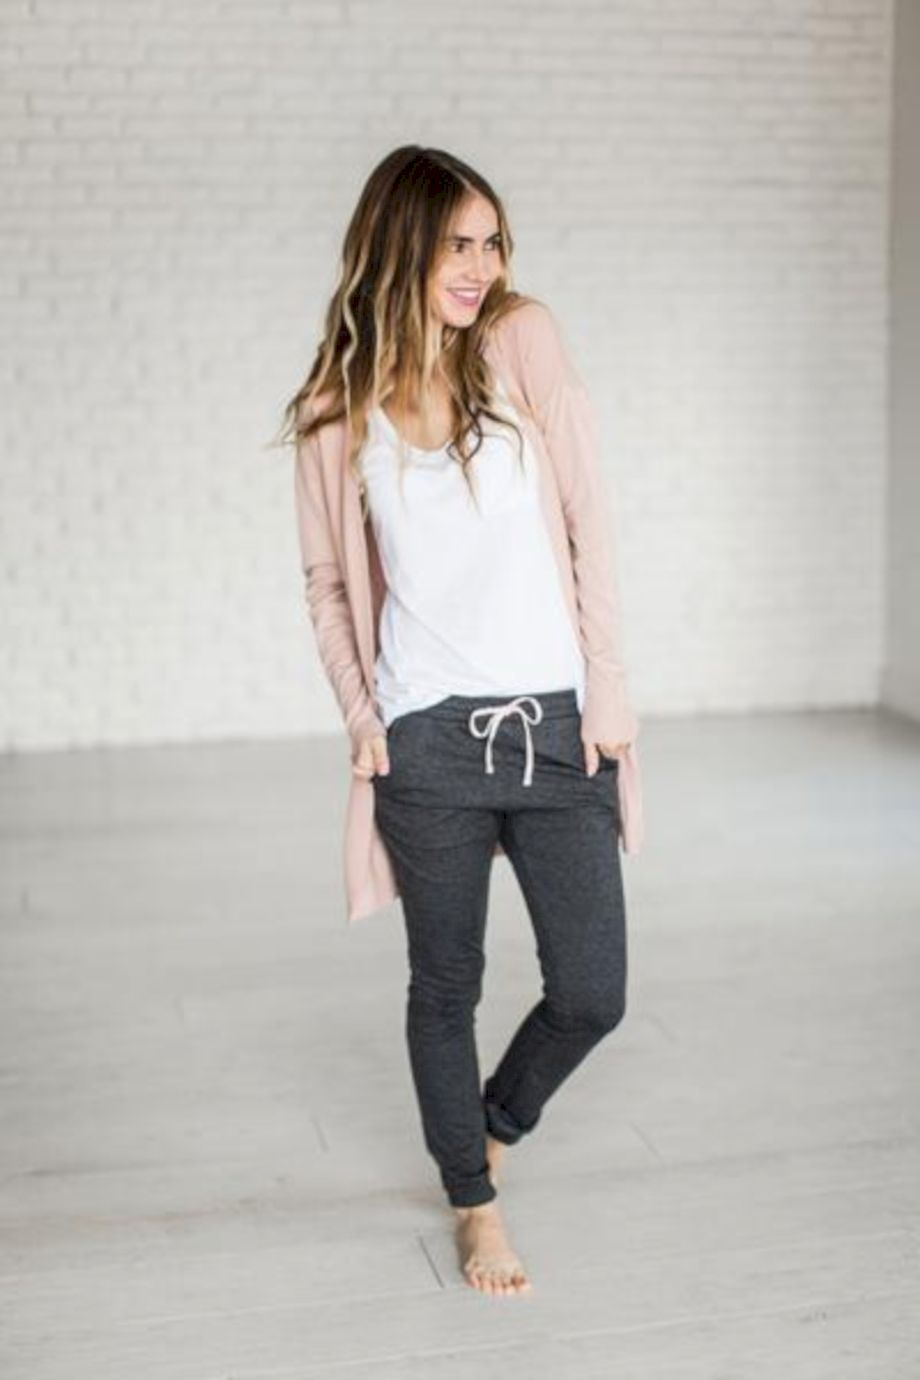 Cardigan outfit 57